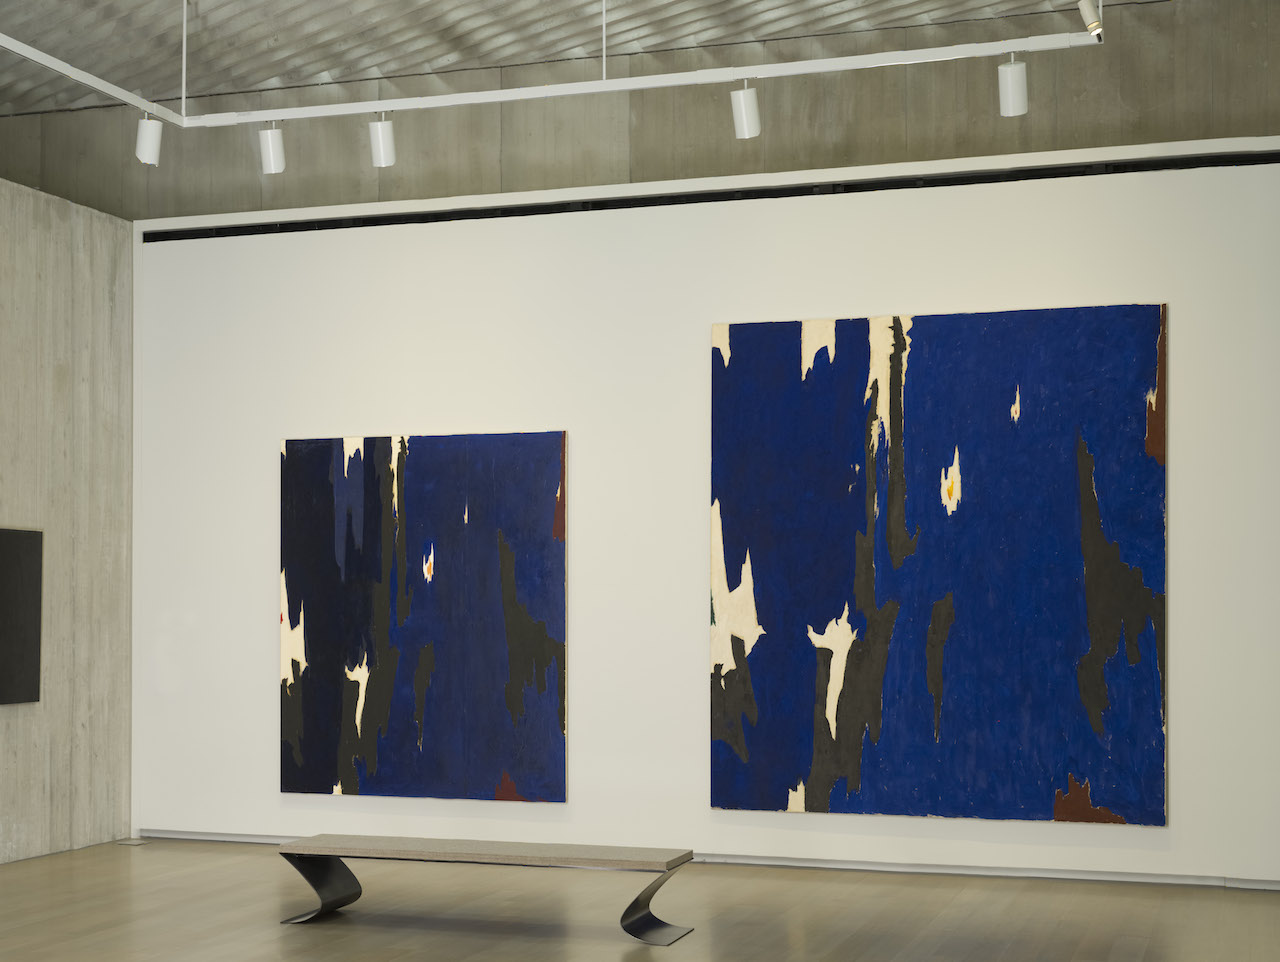 """Installation view of 'Repeat/Recreate' at the Clyfford Still Museum with """"PH-268"""" (1955, left, Clyfford Still Museum © City and County of Denver"""" and """"PH-921"""" (1955, right, Clyfford Still Museum © City and County of Denver) (all photos courtesy the Clyfford Still Museum unless indicated otherwise)"""